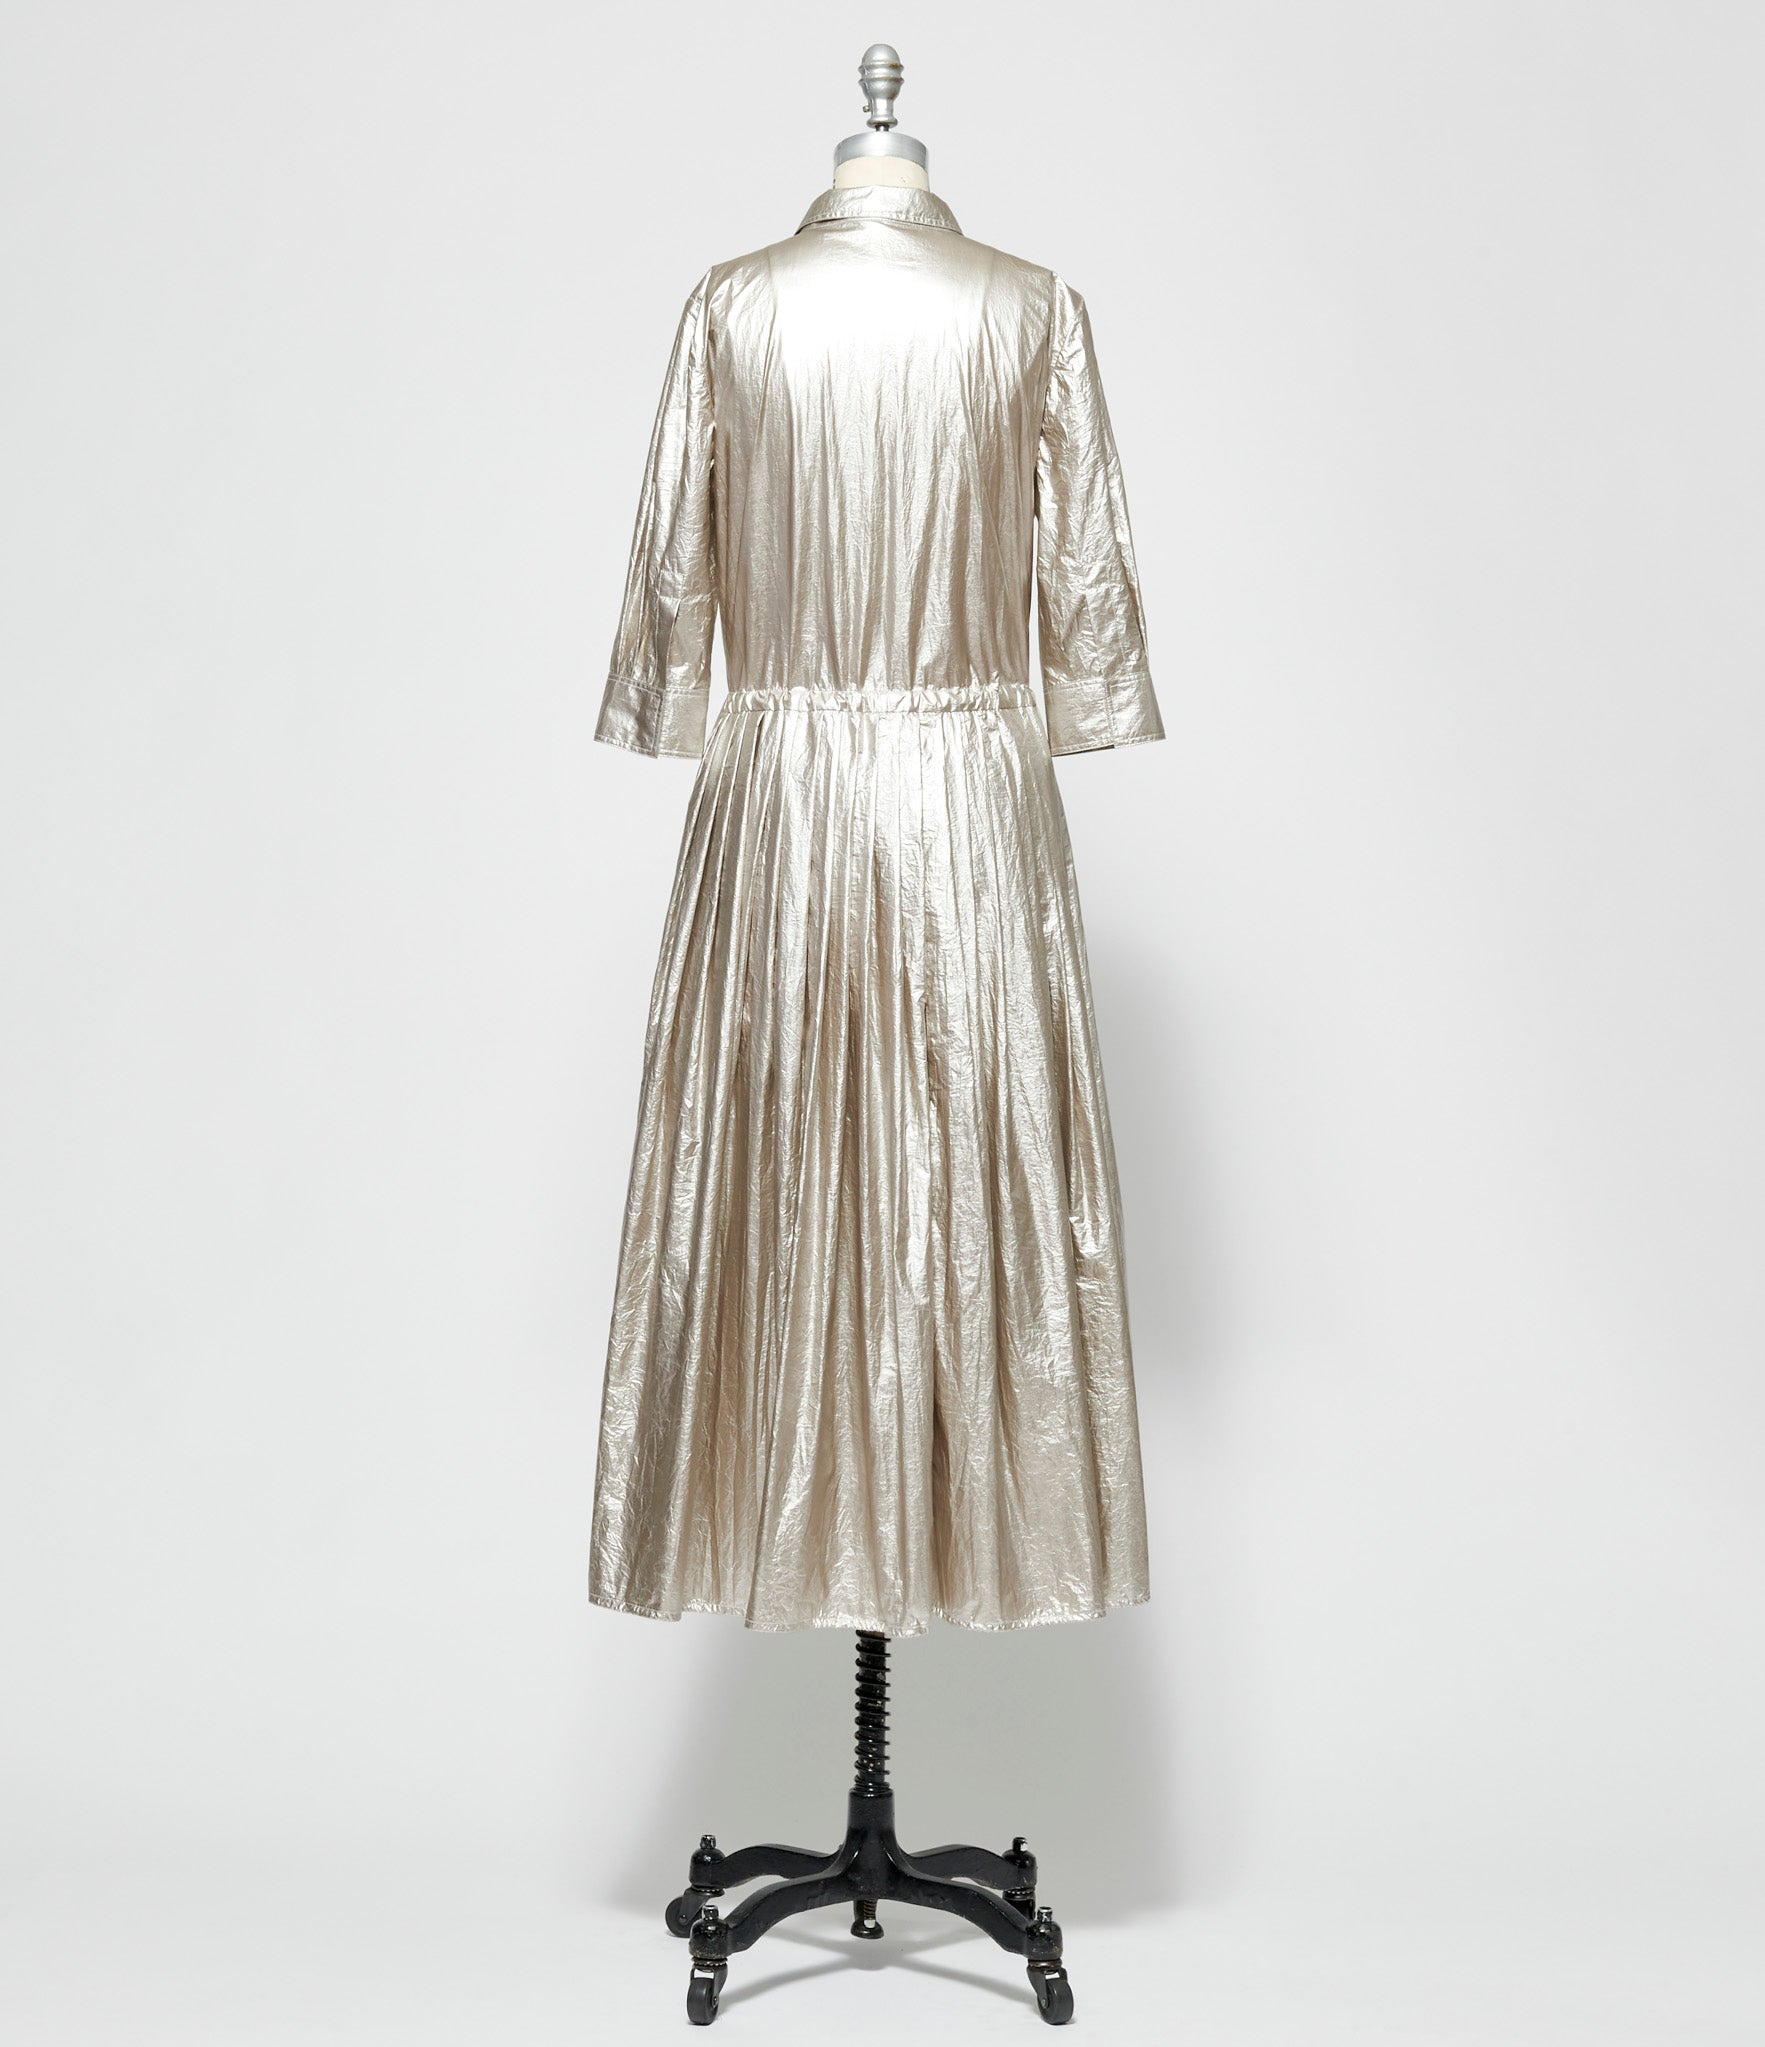 Sara Lanzi Silver Coated Nylon Chemisier Dress